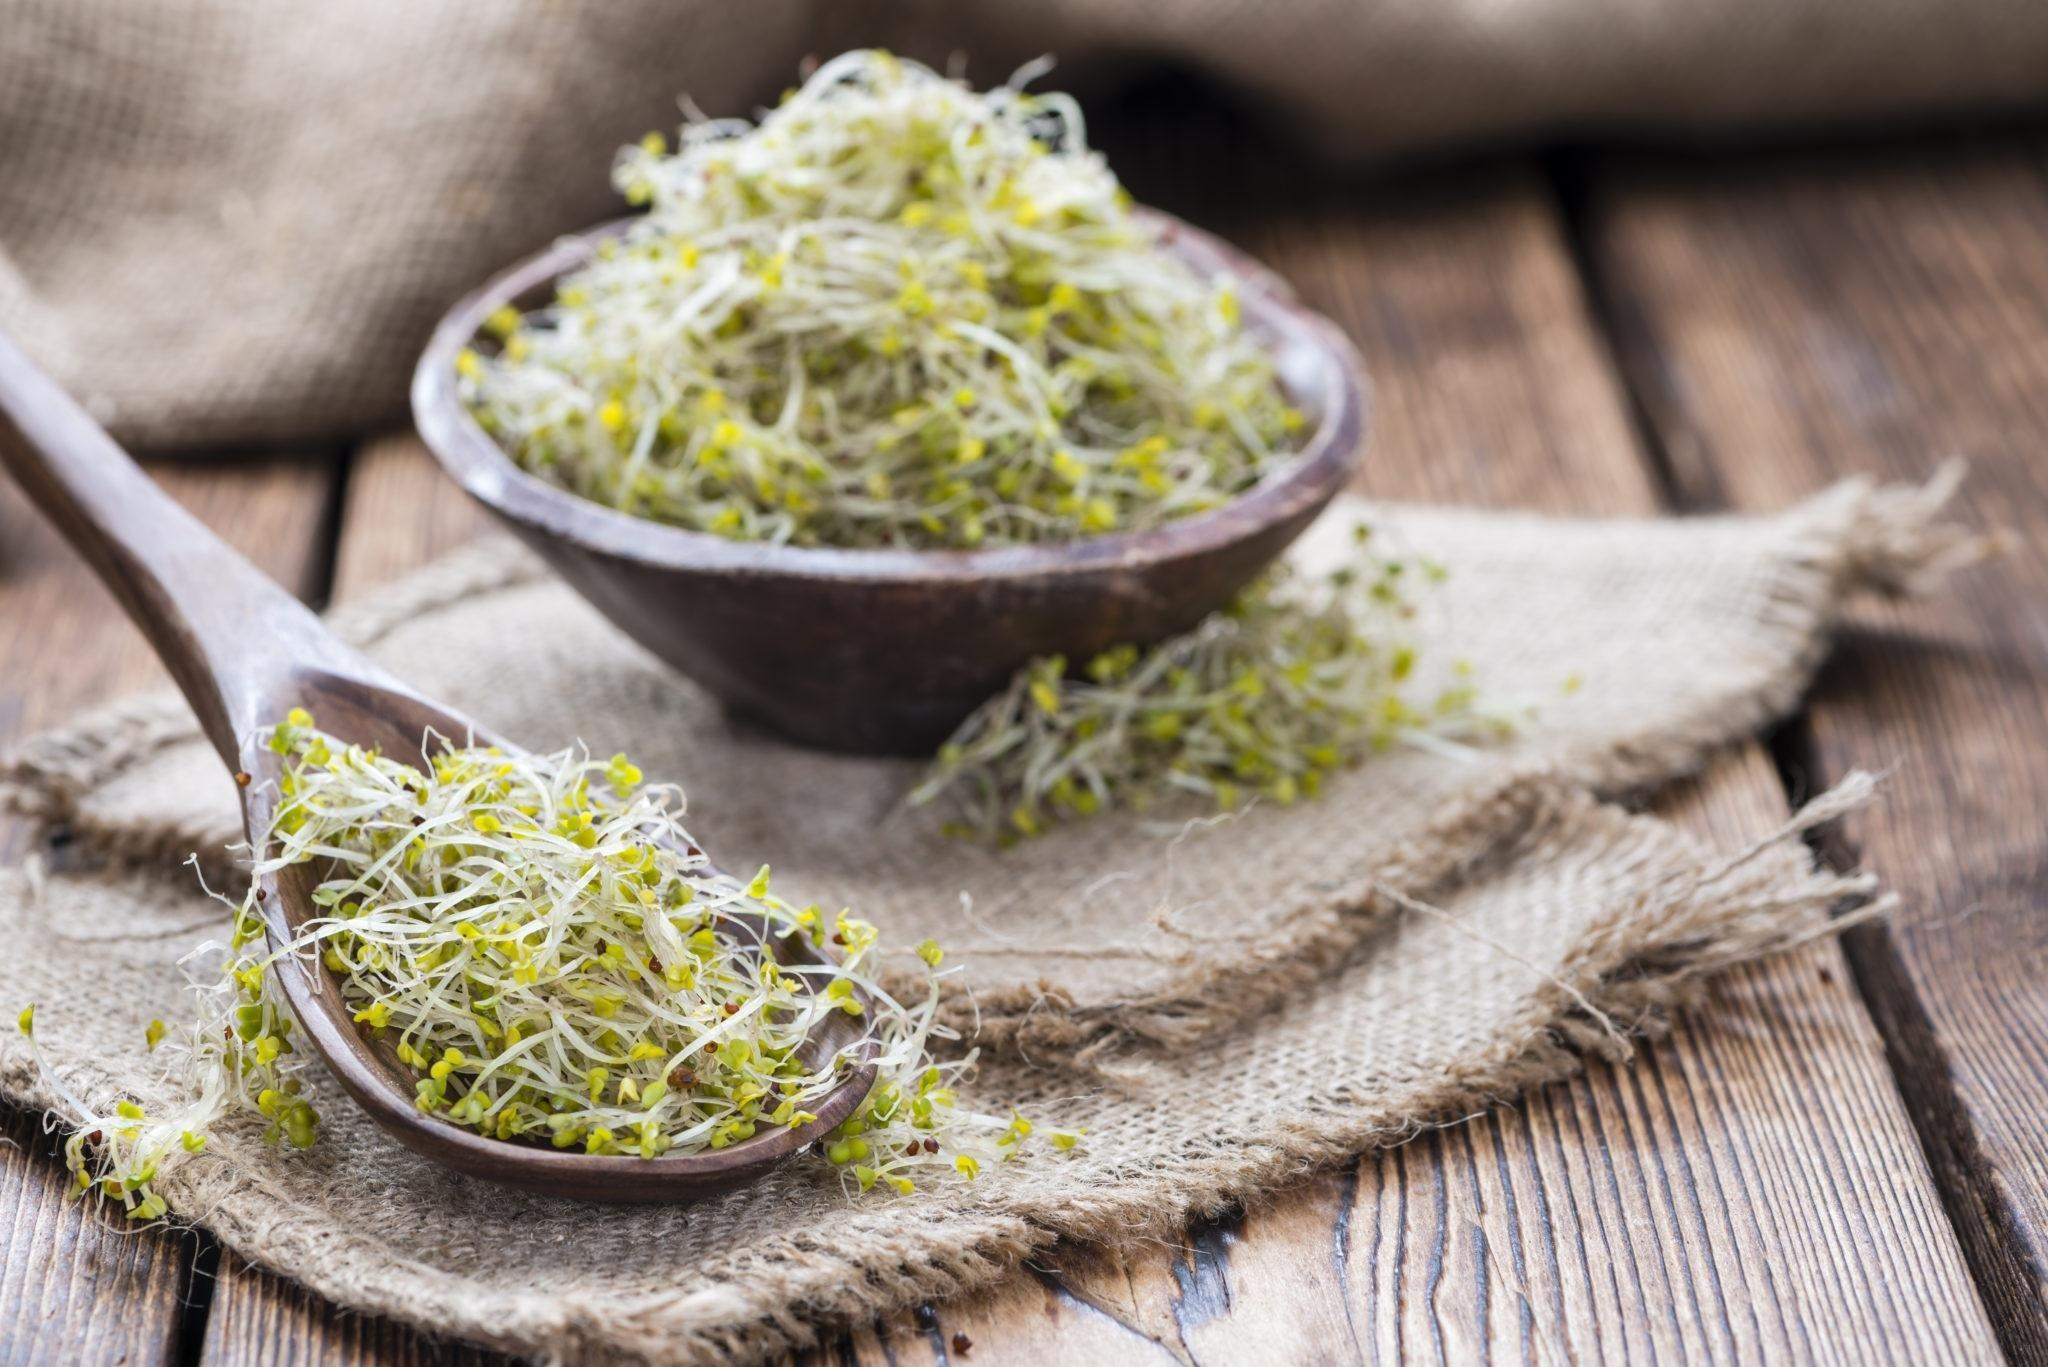 Could Broccoli Sprout Extract Be A Metformin Alternative For Type 2 Diabetes?